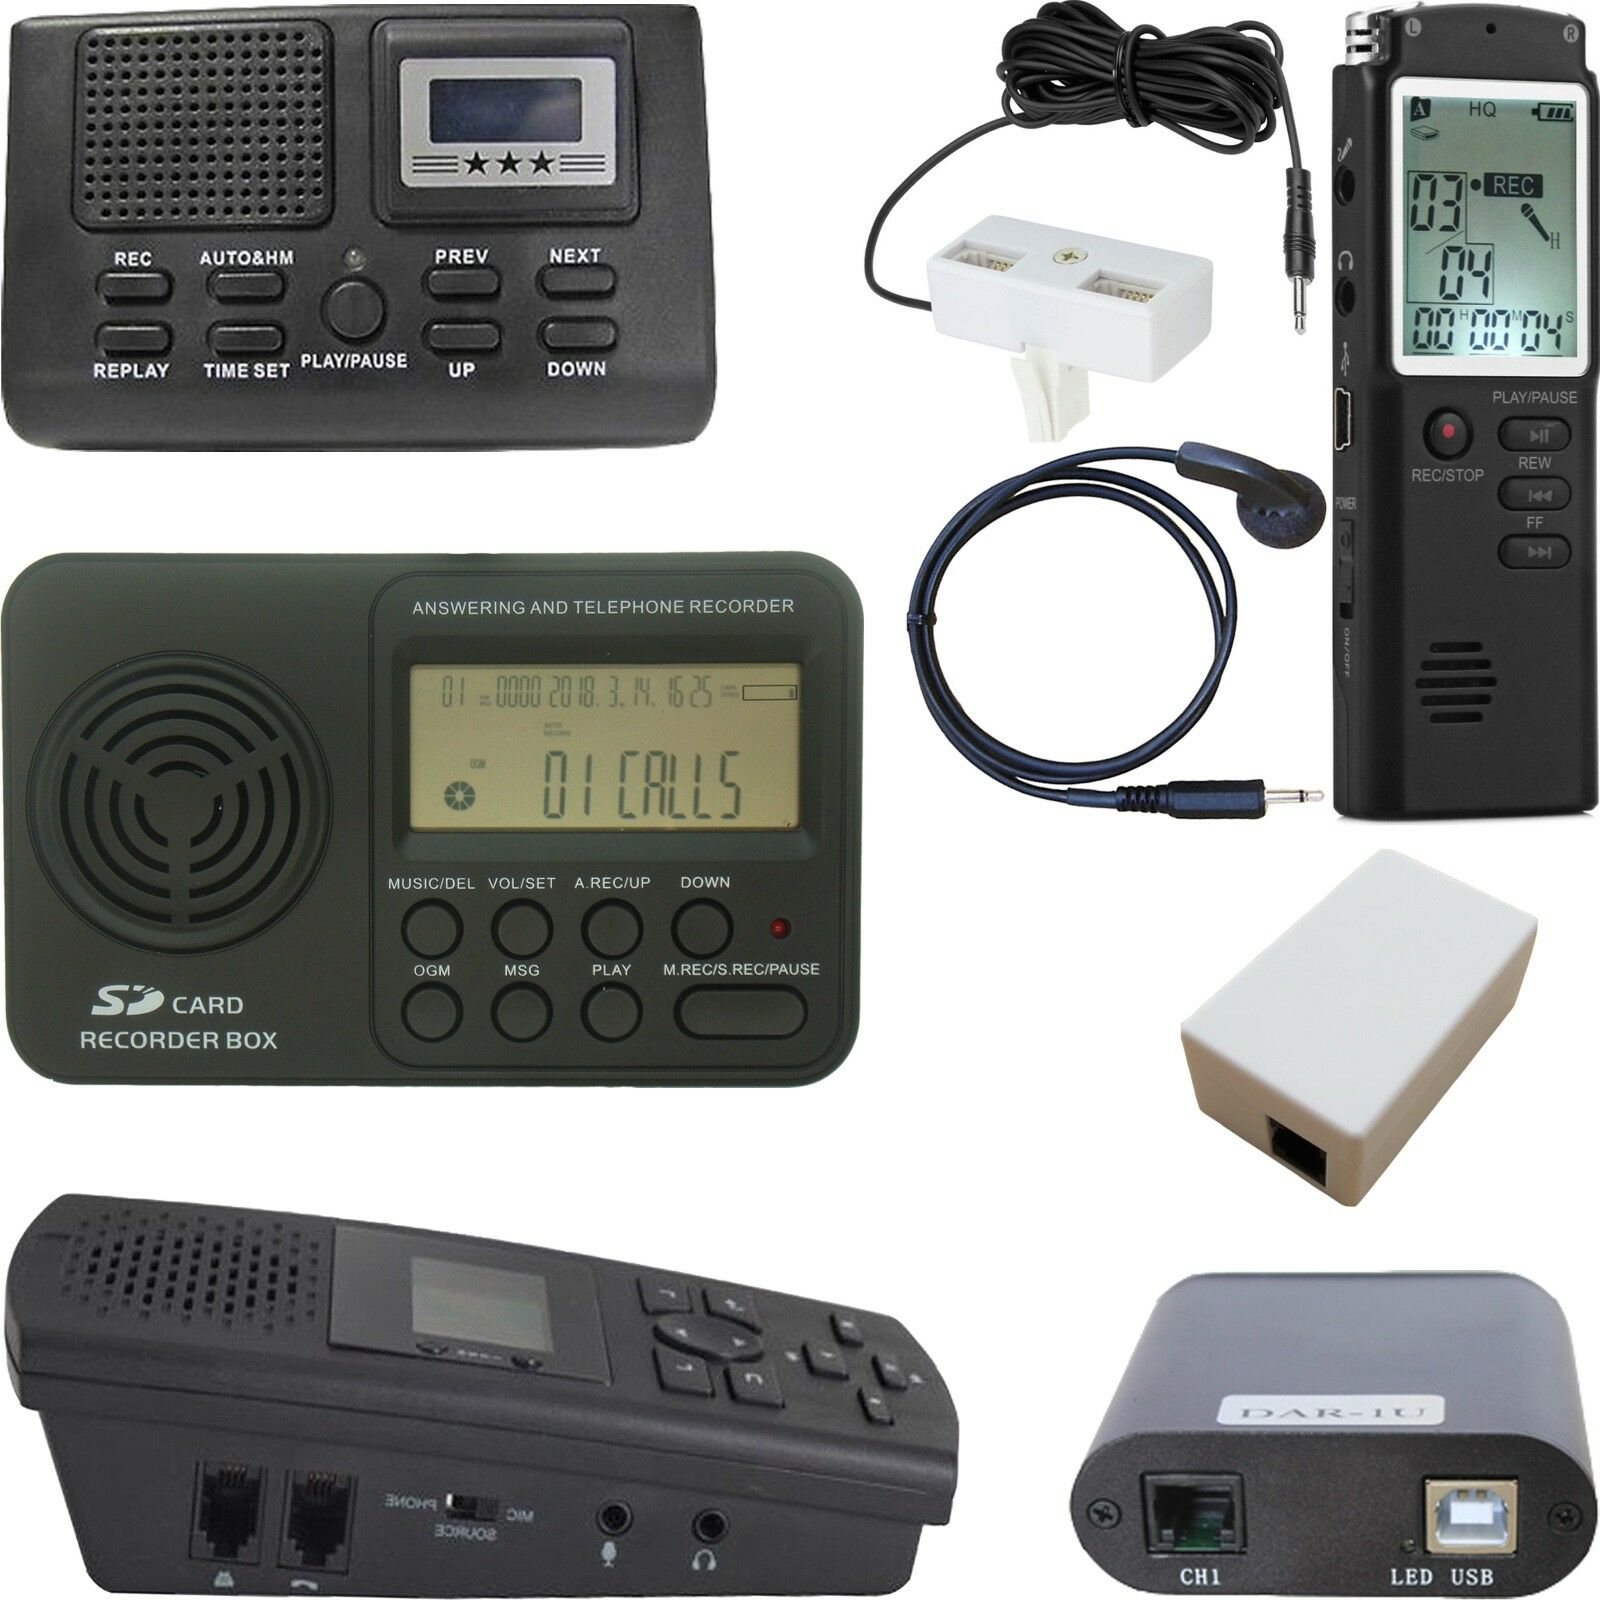 Digital Voice Activated Cell Phone Voice Telephone Room Landline Recorder